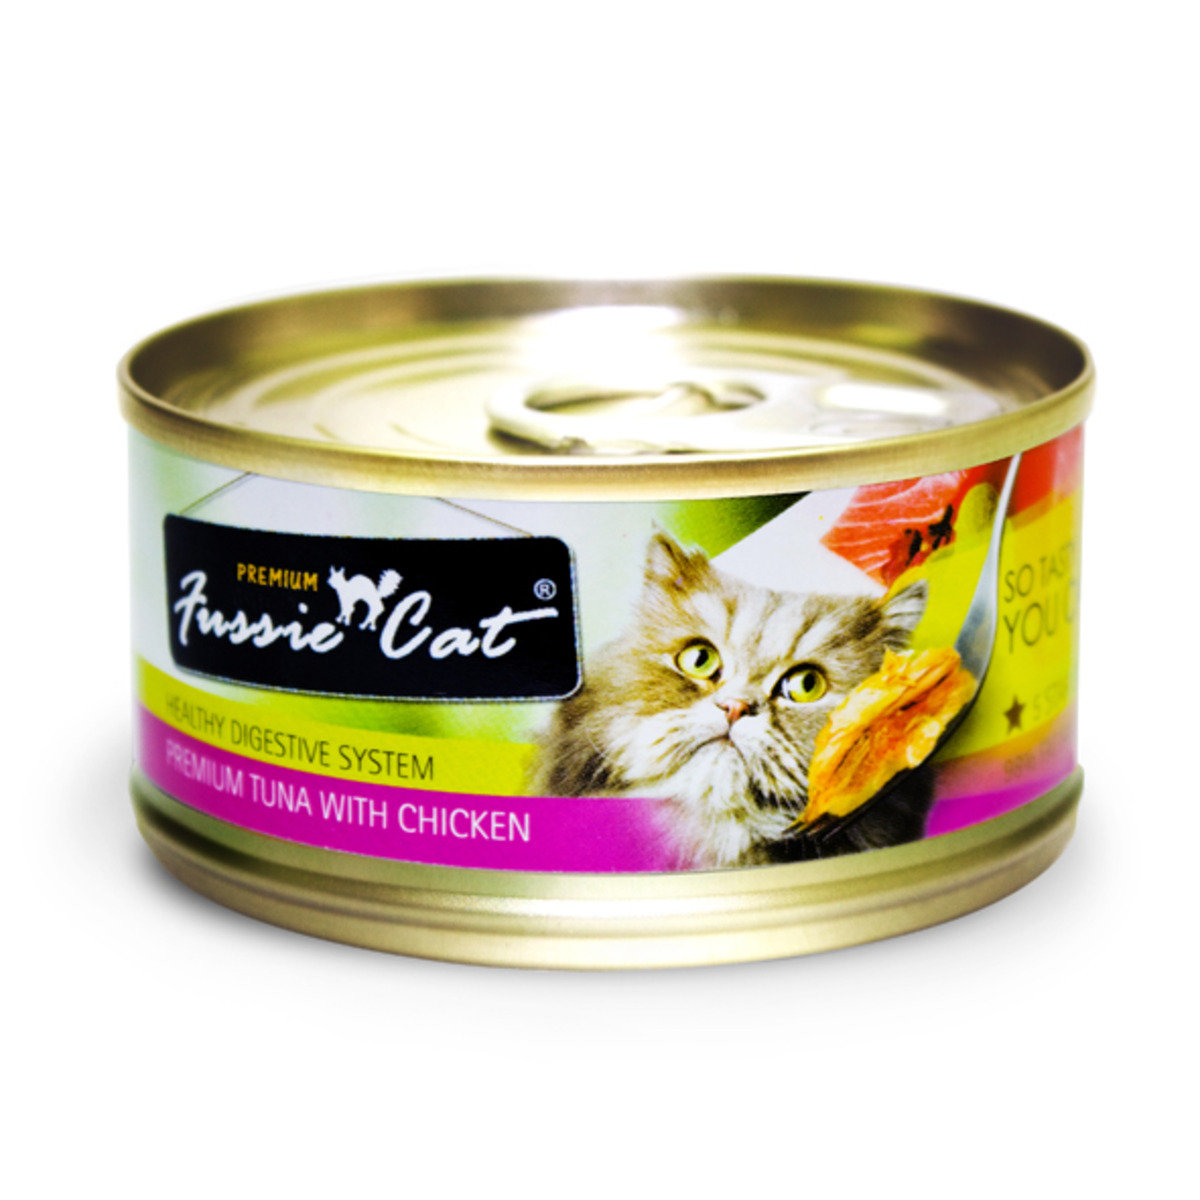 Tuna with Chicken 80g X 24 Canned